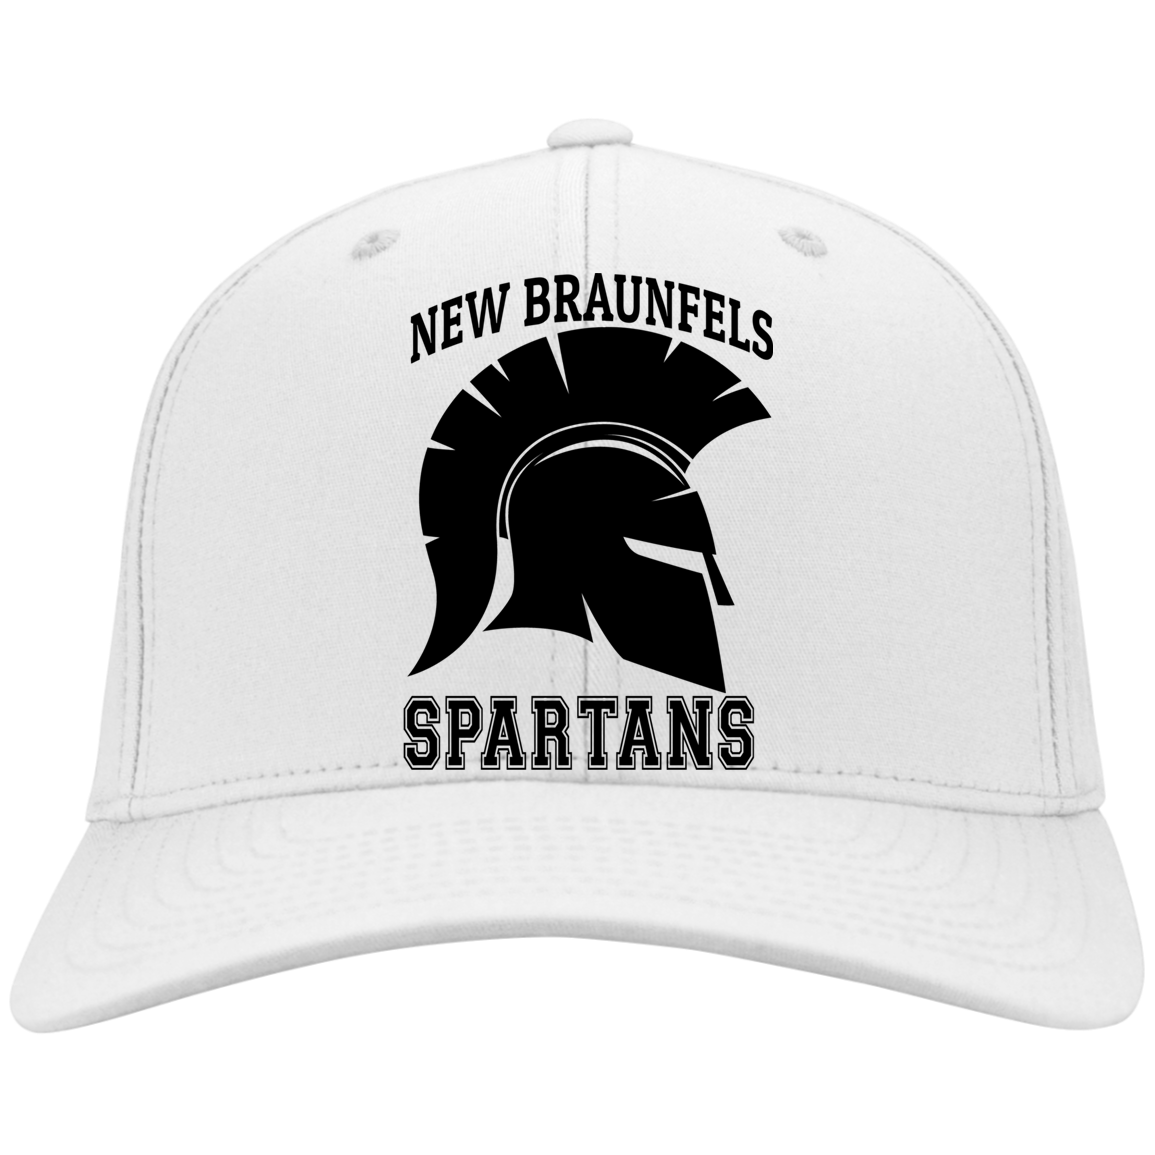 Spartans Flex Fit Twill Baseball Cap